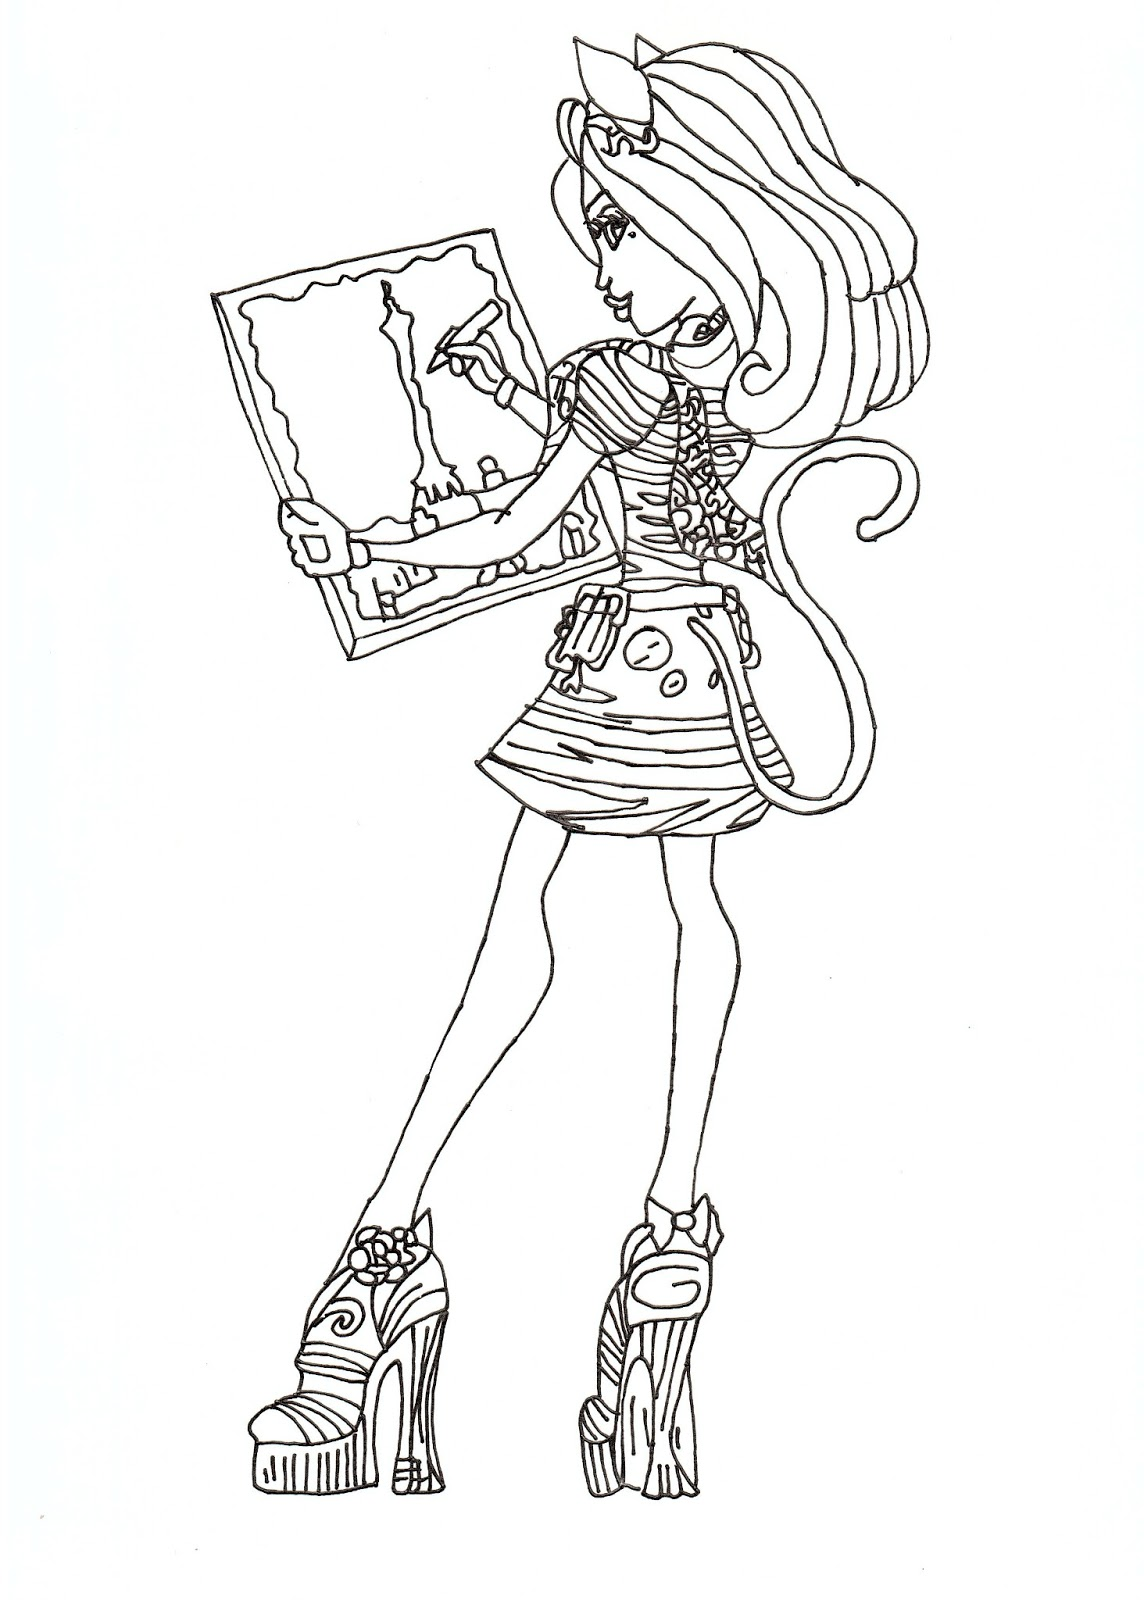 Free Printable Monster High Coloring Pages: Catrine De Mew